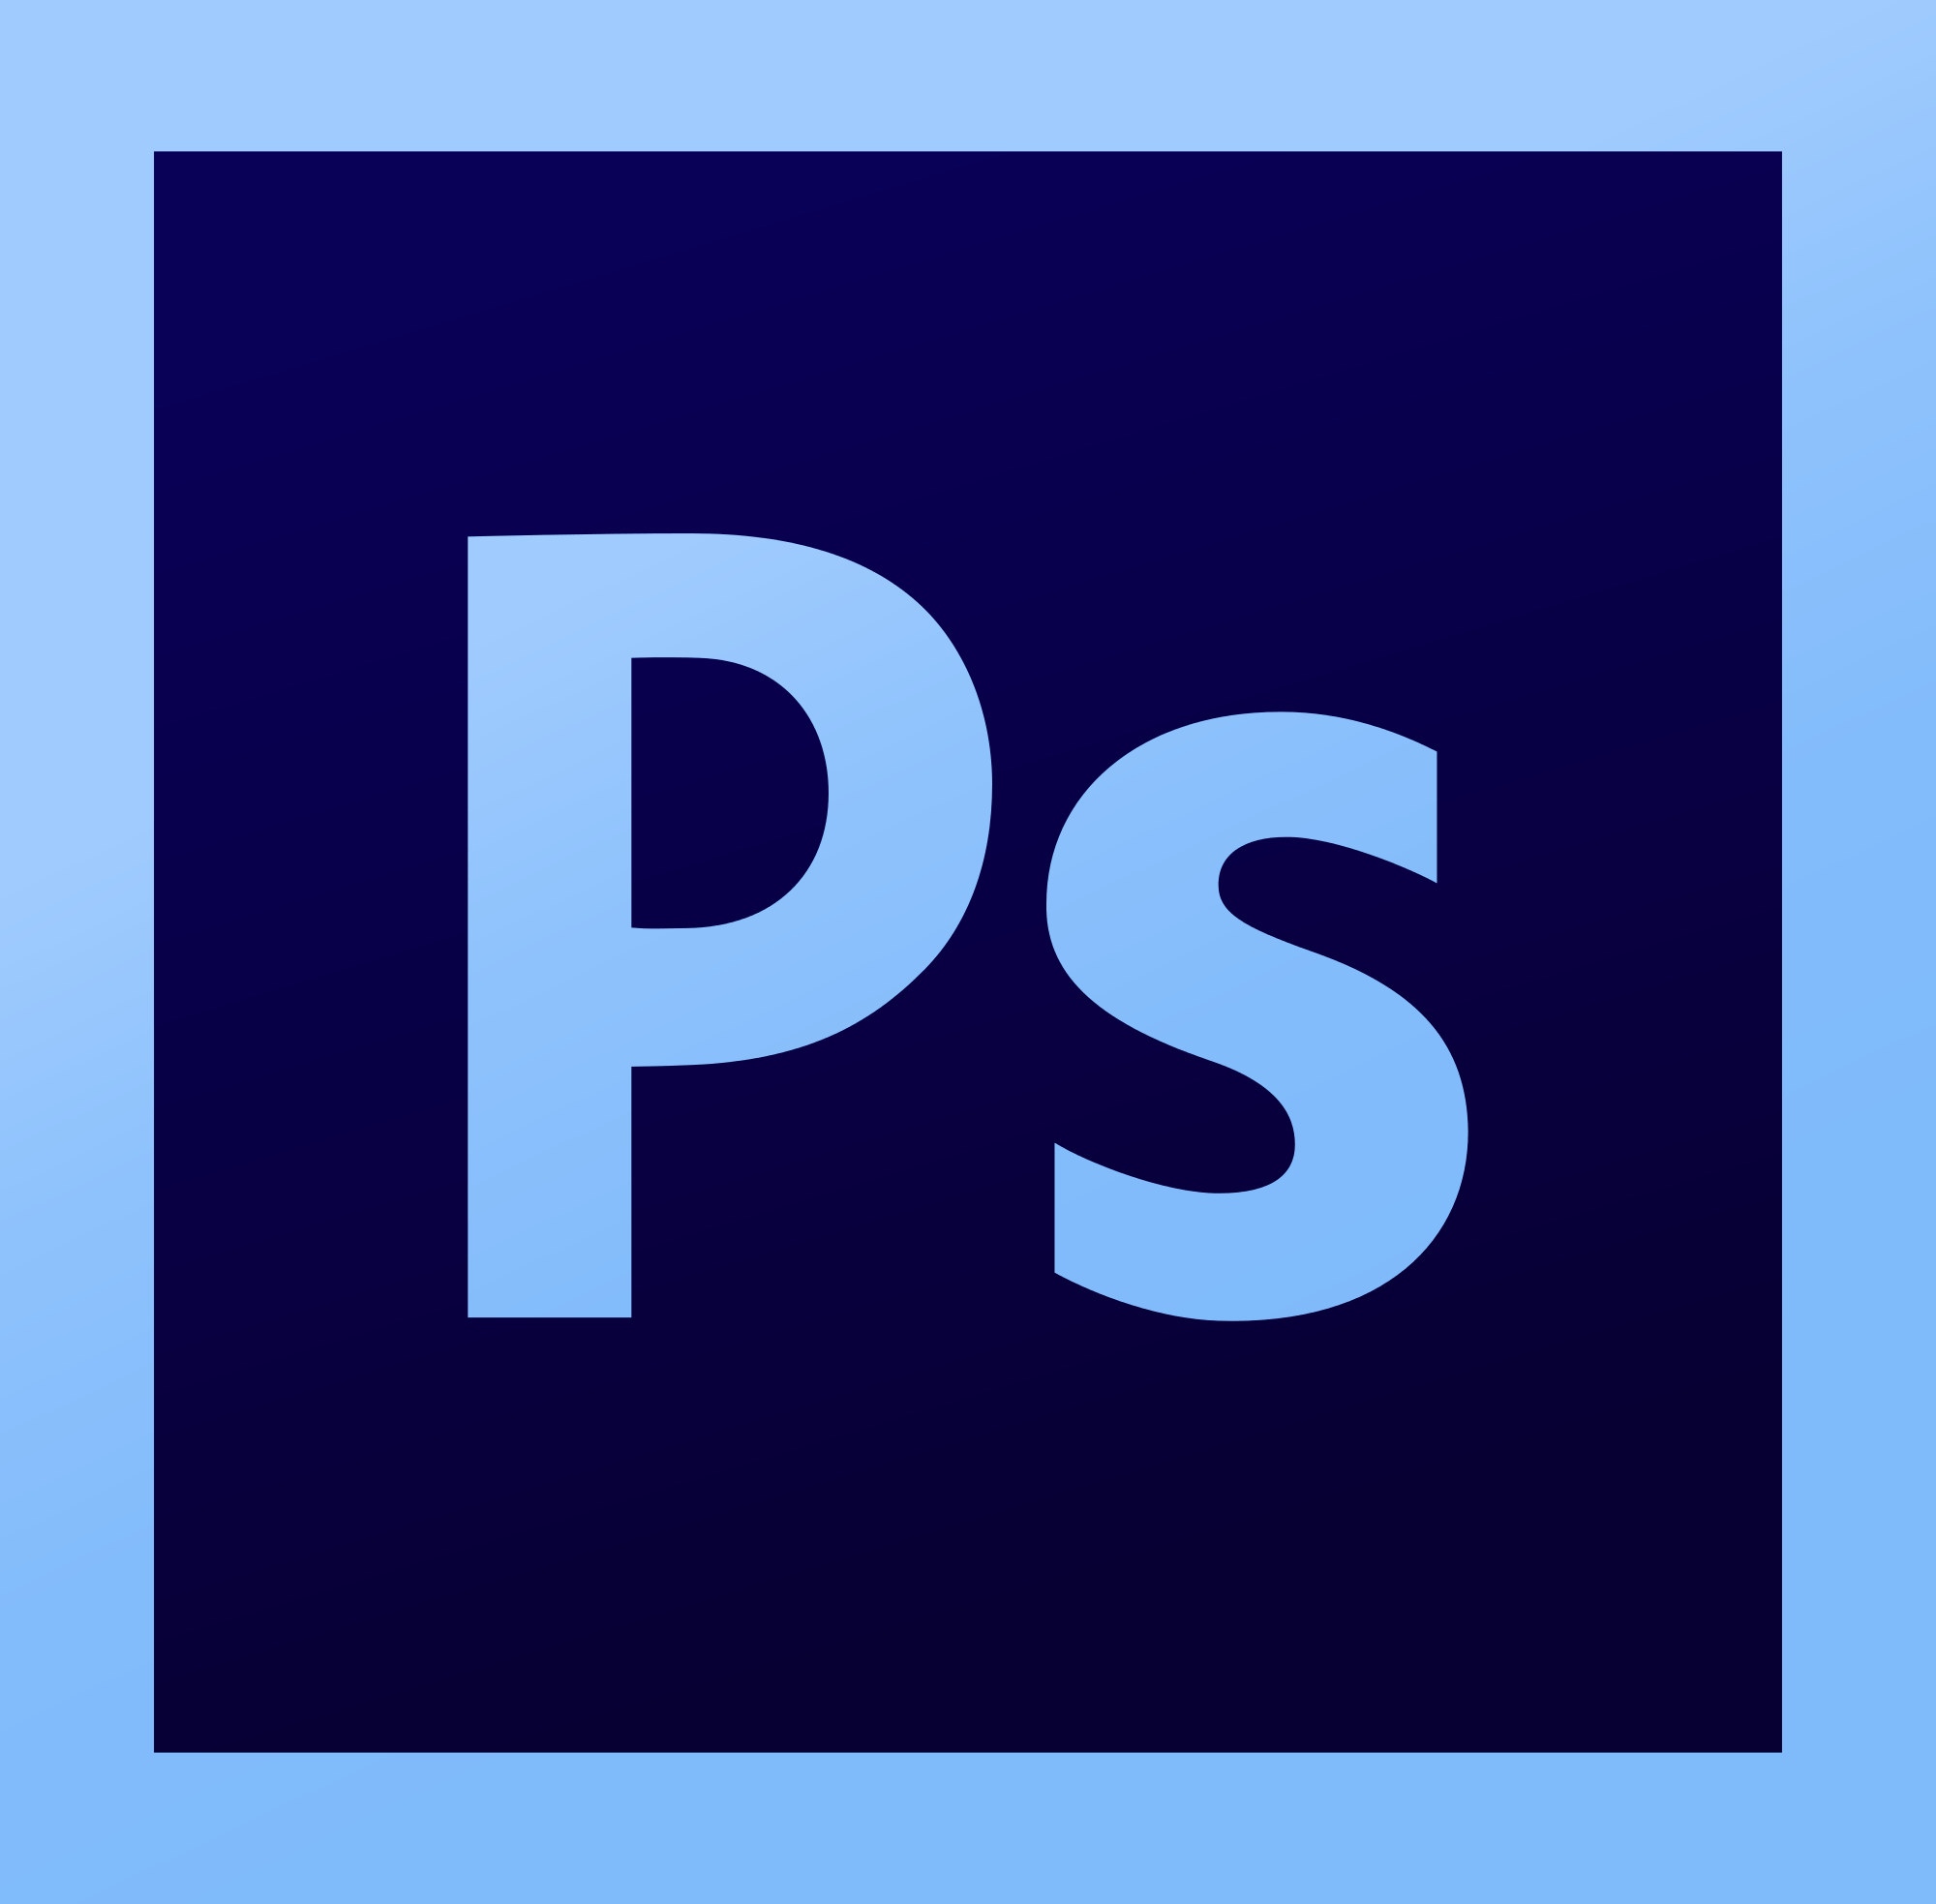 Photoshop Logo transparent PNG.